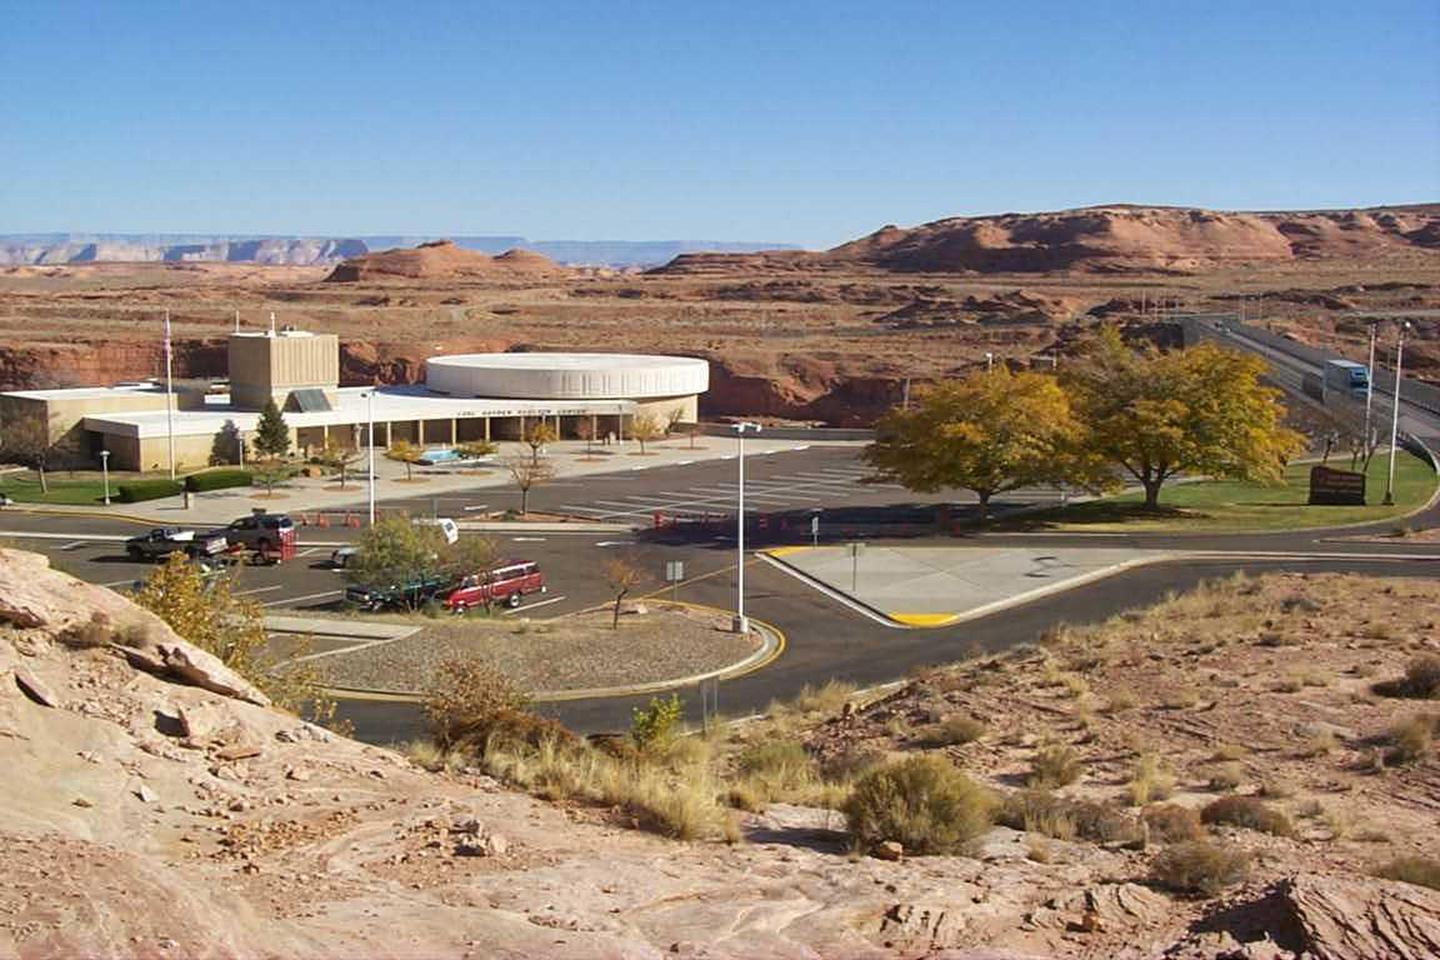 Carl Hayden Visitor Center TopCarl Hayden Visitor Center is a part of the Glen Canyon Dam and Powerplant, giving it a higher federal security status than most visitor centers.